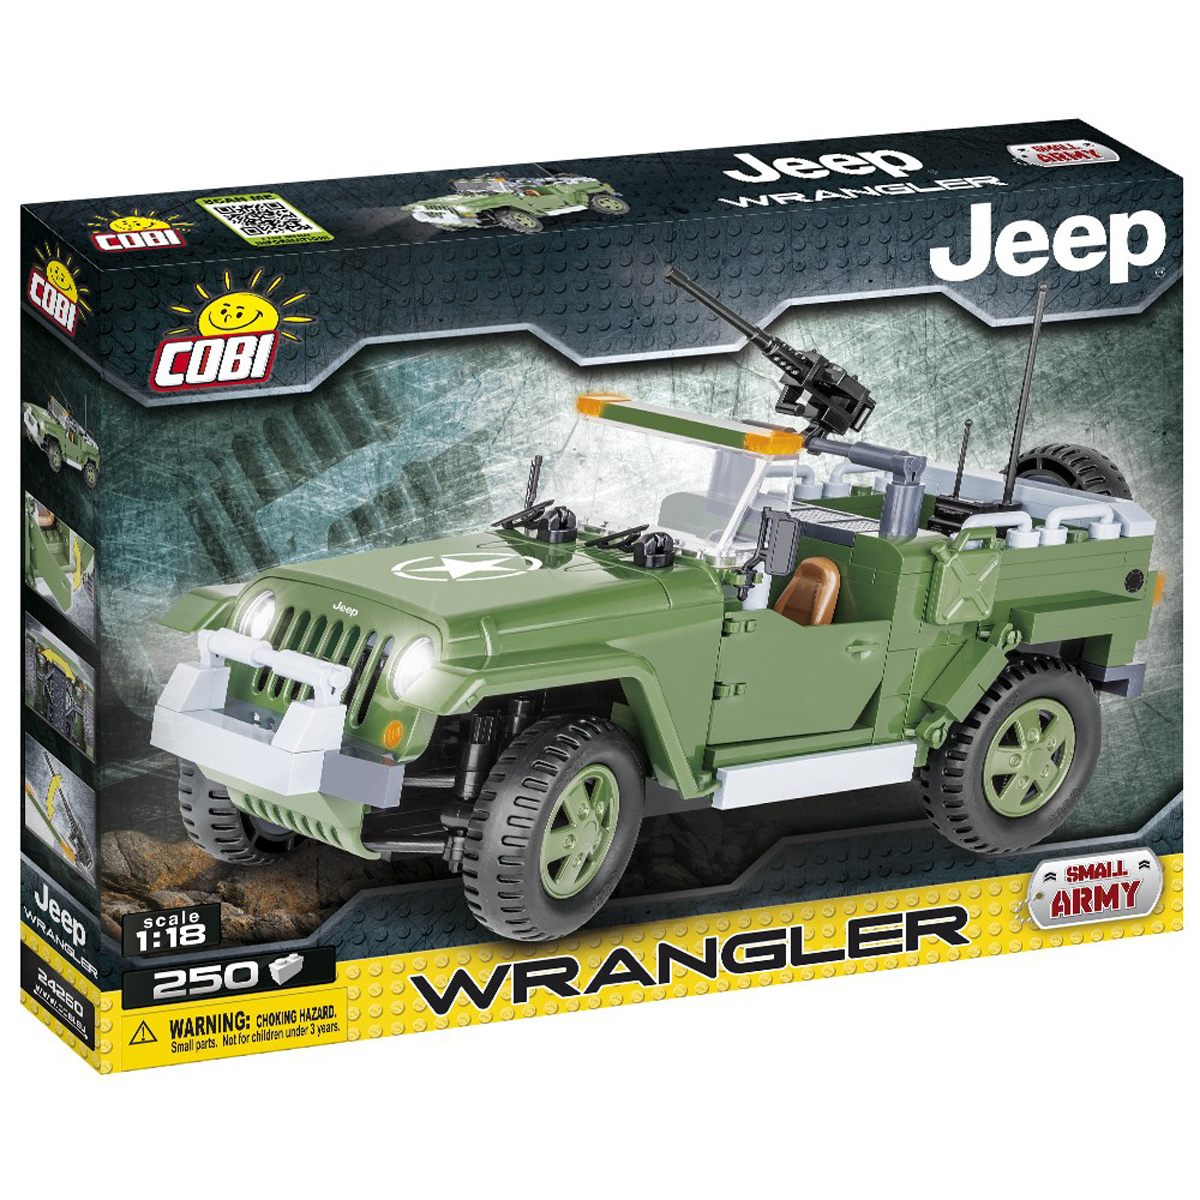 JEEP WRANGLER SMALL ARMY